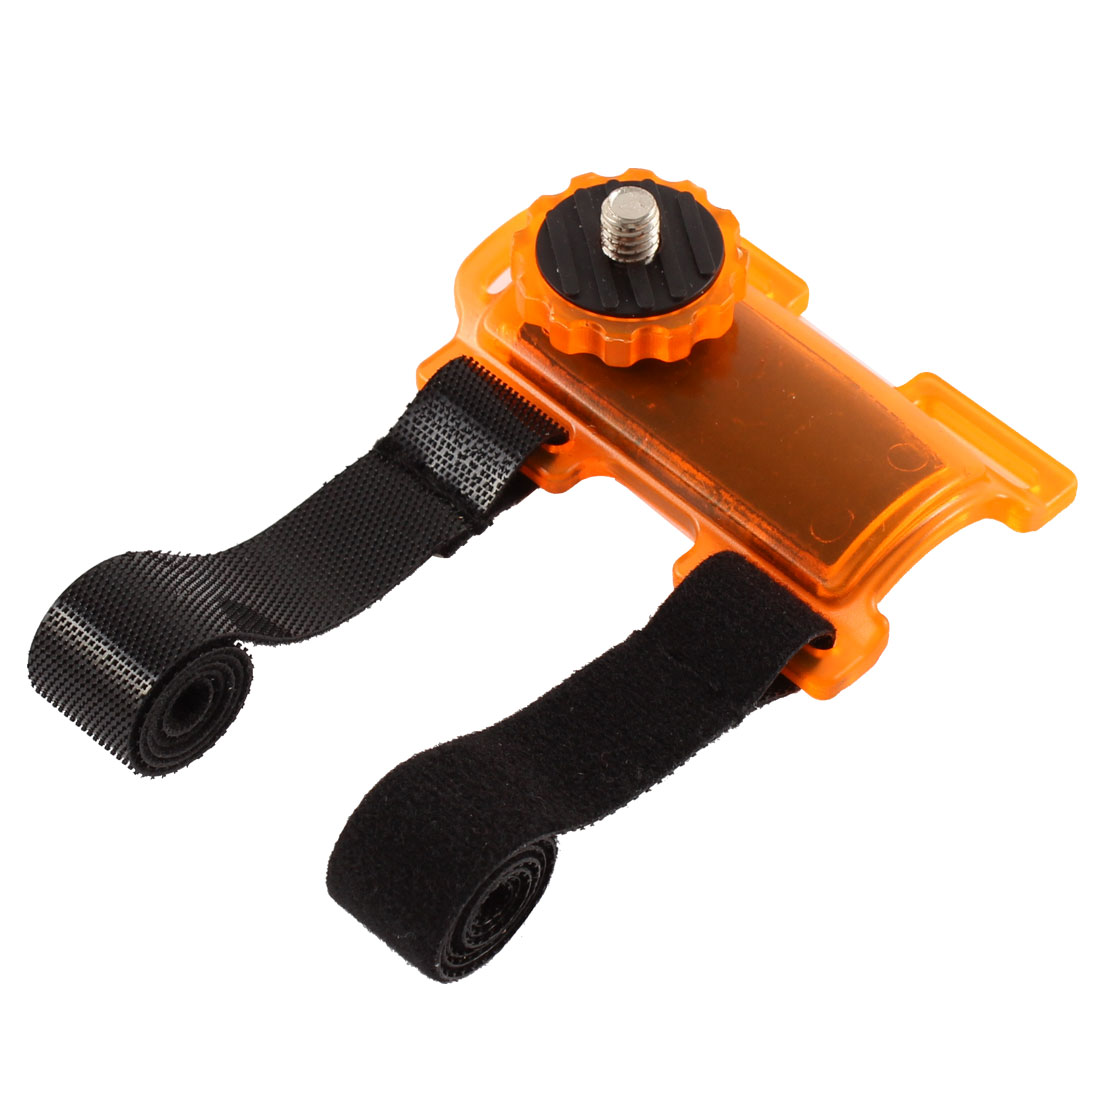 Orange Plastic Bicycle Pod Action Mount Bracket Holder Frame 500g Capacity w Nylon Straps for DSLR Camera Camcorder